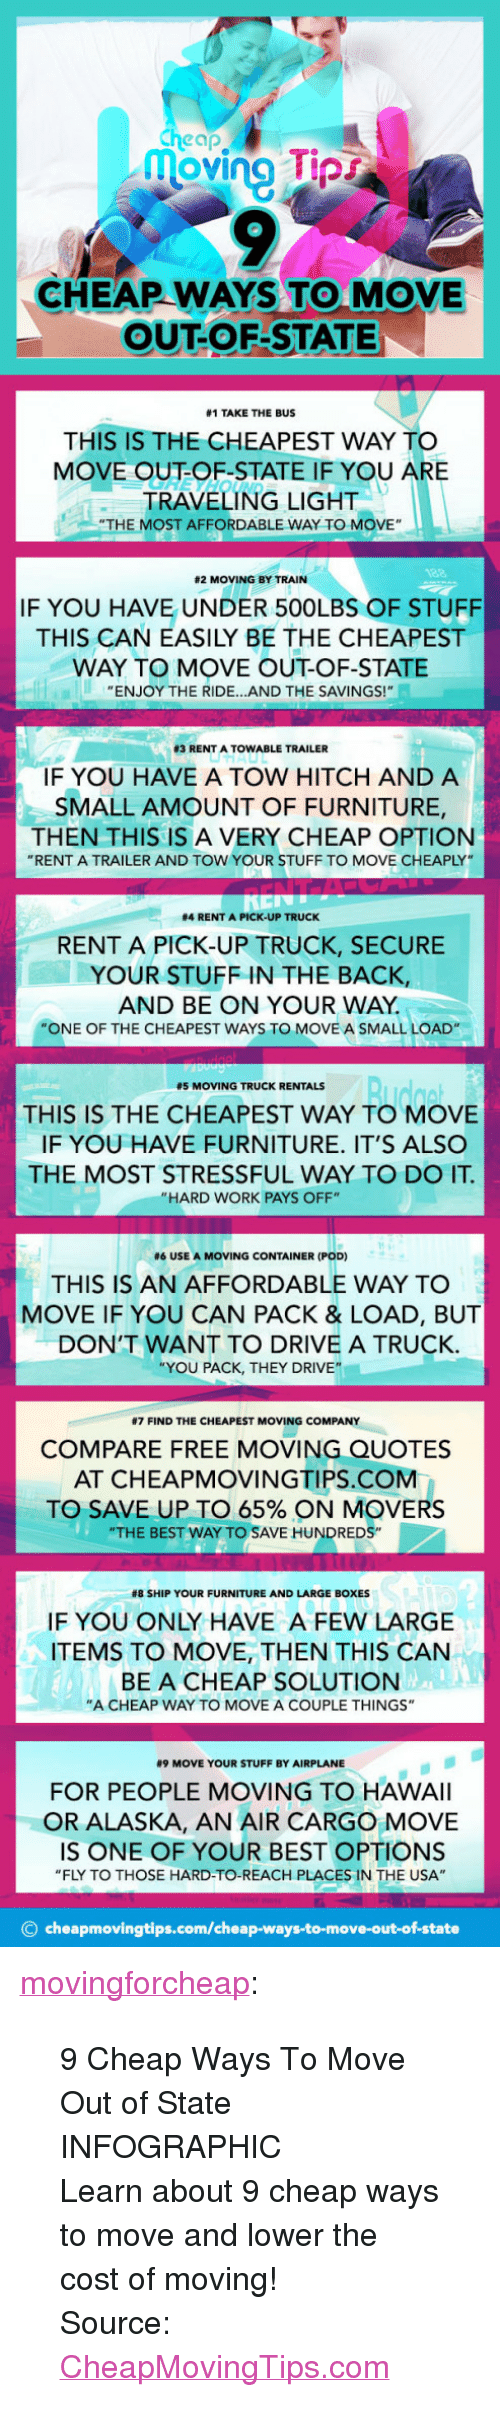 "Tumblr, Work, and Airplane: cheap  oving pr  CHEAP WAYS TO MOVE  OUT-OF-STATE  #1 TAKE THE BUS  THIS IS THE CHEAPEST WAY TO  MOVE OUT-OF-STATE IF YOU A  RE  TRAVELING LIGHT  ""THE MOST AFFORDABLE WAY TO MOVE""  82 MOVING BY TRAIN  IF YOU HAVE UNDER 500LBS OF STUFF  THIS CAN EASILY BE THE CHEAPEST  WAY TO MOVE OUT-OF-STATE  ENJOY THE RIDE...AND THE SAVINGS!  83 RENT A TOW ABLE TRAILER  IF YOU HAVE A TOW HITCH AND A  SMALL AMOUNT OF FURNITURE,  THEN THIS IS A VERY CHEAP OPTION  ""RENT A TRAILER AND TOW YOUR STUFF TO MOVE CHEAPLY  #4 RENT A PICK-UP TRUCK  RENT A PICK-UP TRUCK, SECURE  YOUR STUFF IN THE BACK,  AND BE ON YOUR WAY  ""ONE OF THE CHEAPEST WAYS TO MOVE A SMALL LOAD  #5 MOVING TRUCK RENTALS  THIS IS THE CHEAPEST WAY TO MOVE  IF YOU HAVE FURNITURE. IT'S ALSO  THE MOST STRESSFUL WAY TO DO IT  ""HARD WORK PAYS OFF""  #6 USE A MOVING CONTAINER (POD)  THIS IS AN AFFORDABLE WAY TO  MOVE IF YOU CAN PACK & LOAD, BUT  DON'T WANT TO DRIVE A TRUCK  YOU PACK, THEY DRIVE""  #7 FIND THE CHEAPEST MOVING COMPANY  COMPARE FREE MOVING QUOTES  AT CHEAPMOVINGTIPS.COM  TO SAVE UP TO 65% ON MOVERS  ""THE BEST WAY TO SAVE HUNDREDS""  #8 SHIP YOUR FURNITURE AND LARGE BOXES  IF YOU ONLY HAVE A FEW LARGE  ITEMS TO MOVE, THEN THIS CAN  BE A CHEAP SOLUTION  ""A CHEAP WAY TO MOVE A COUPLE THINGS""  #9 MOVE YOUR STUFF BY AIRPLANE  FOR PEOPLE MOVING TO HAWAlI  OR ALASKA, AN AIR CARGO MOVE  IS ONE OF YOUR BEST OPTIONS  ""FLY TO THOSE HARD-TO-REACH PLACES IN THE USA""  © cheapmovingtips.com/cheap-ways-to-move-out-of-state <p><a href=""http://movingforcheap.tumblr.com/post/172942377344/cheap-ways-to-move-infographic"" class=""tumblr_blog"">movingforcheap</a>:</p><blockquote> <p>9 Cheap Ways To Move Out of State INFOGRAPHIC </p>   <p>Learn about 9 cheap ways to move and lower the cost of moving!</p>  <p>Source: <a href=""http://www.cheapmovingtips.com/cheap-ways-to-move-out-of-state/"" title=""9 Cheap Ways To Move Out Of State"">CheapMovingTips.com</a></p> </blockquote>"